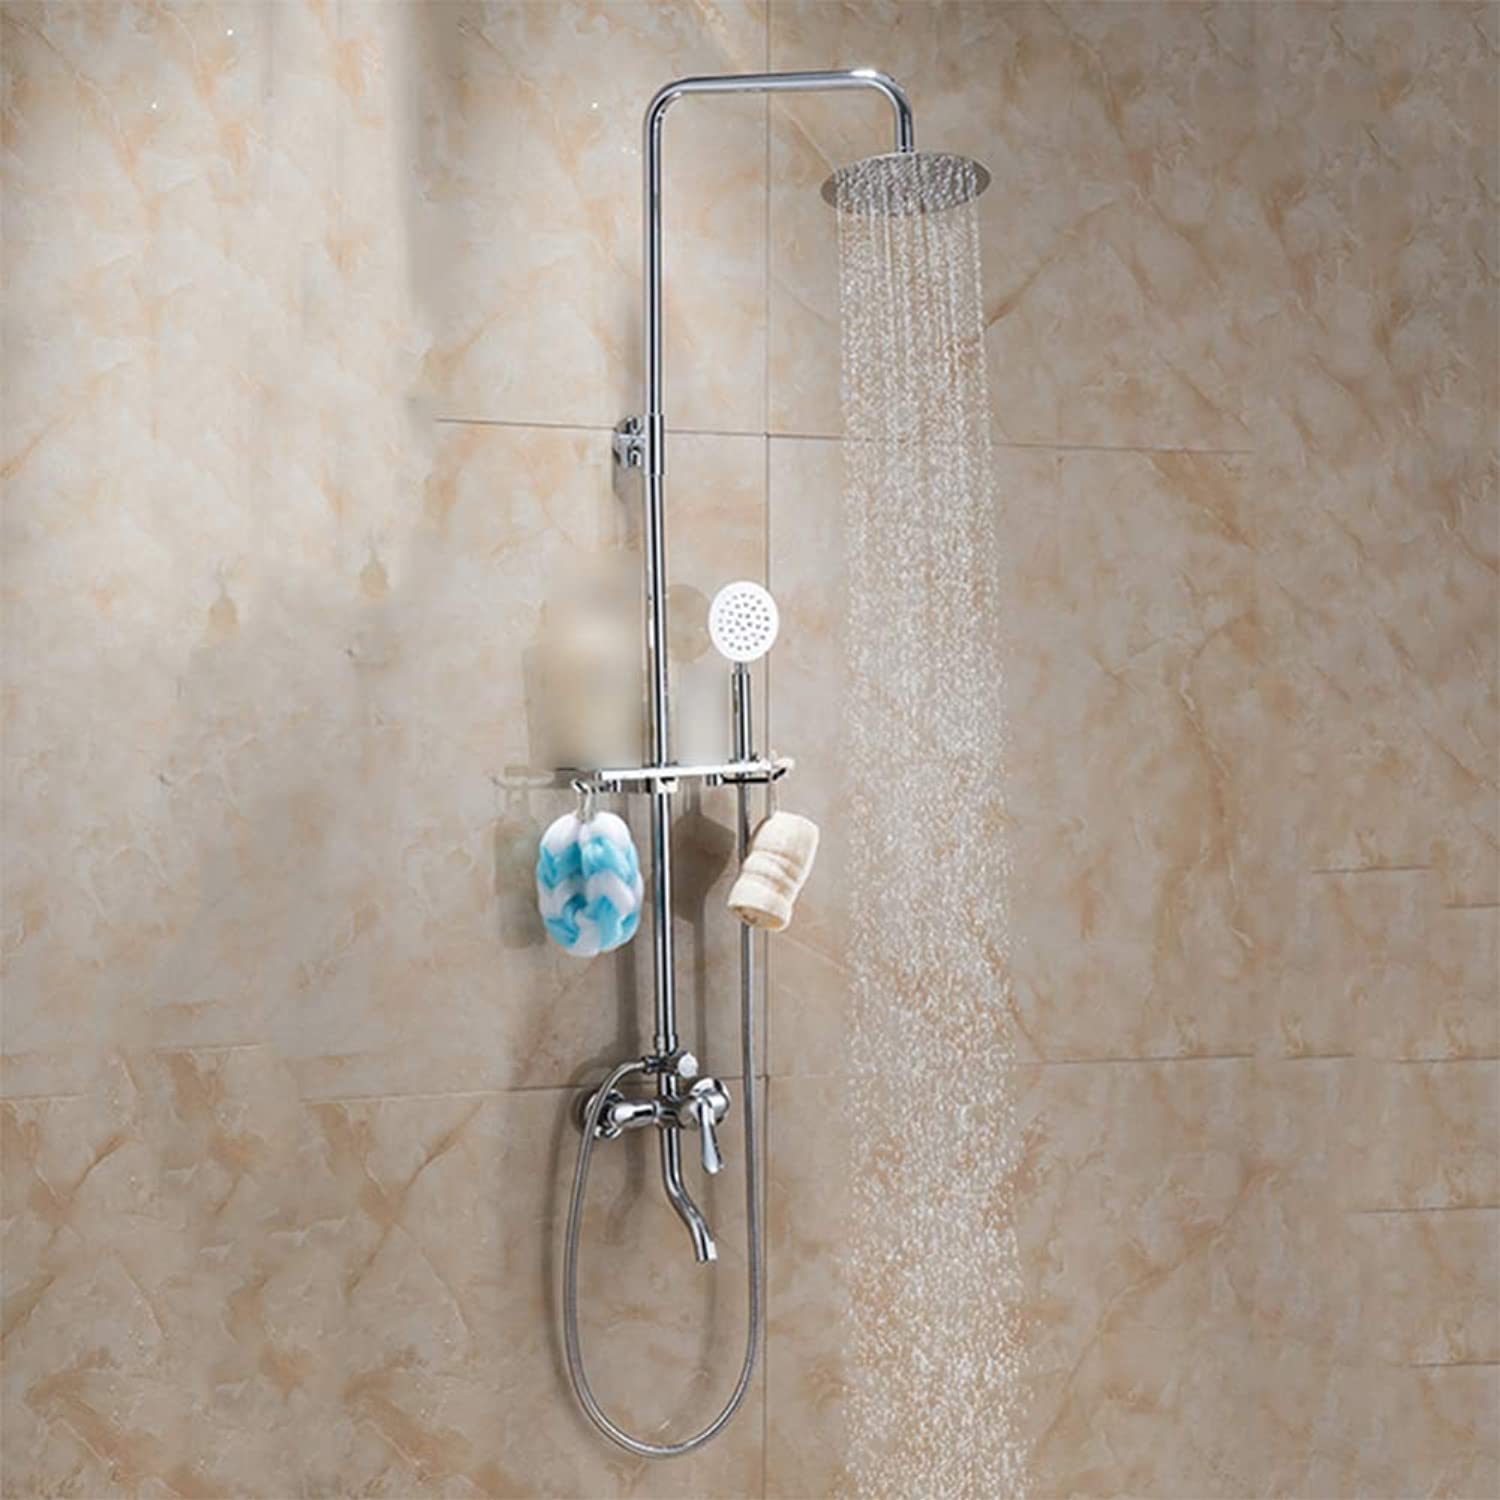 LPW shower set shower shower set multi-function third gear adjustment bathroom shower shower head hand shower wall-mounted shower